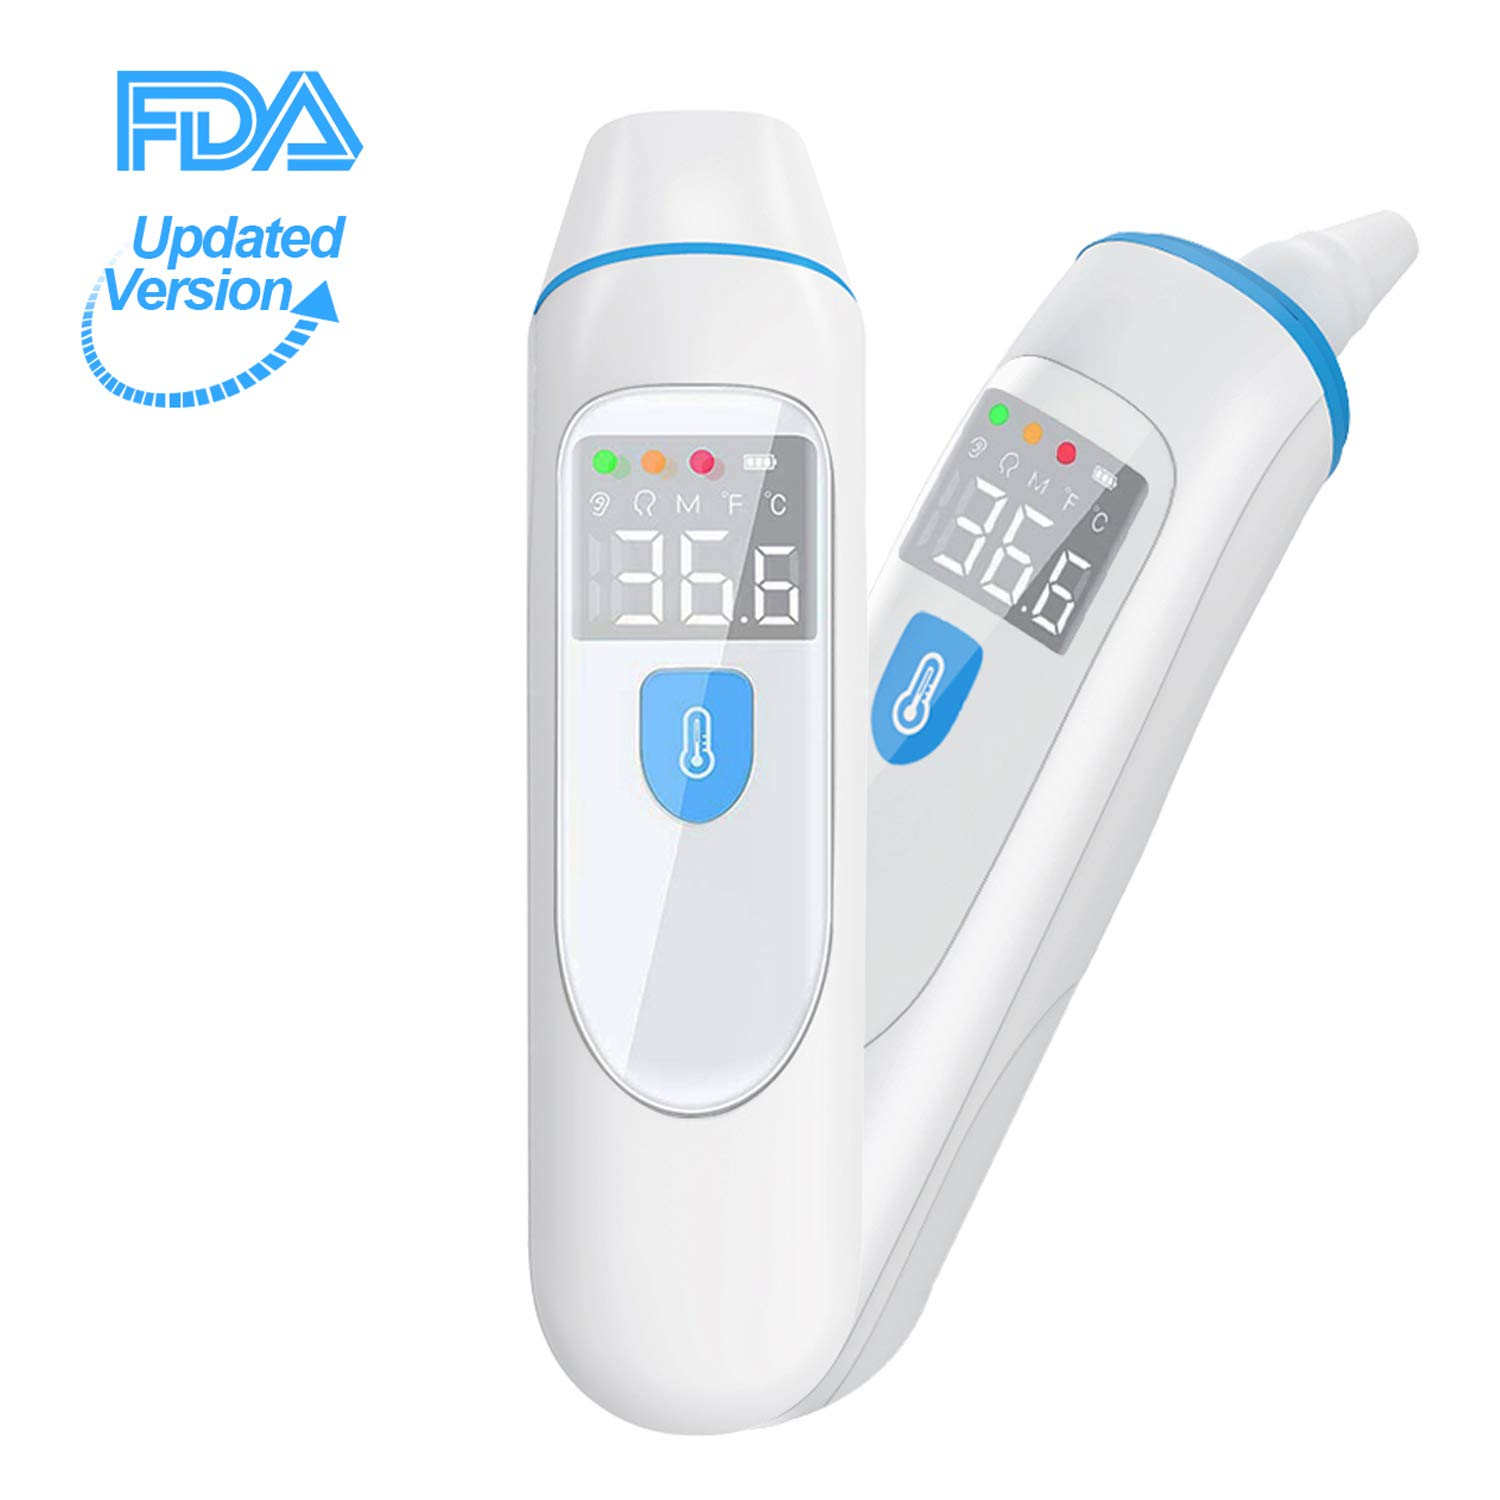 FERTOY Medical Digital Infrared Thermometer with 32 Data Memory, °C / °F Switchable, Multiple Modes, Forehead & Ear Thermometer with New Algorithm, Instant Accurate Reading for Baby Kids Adults by FERTOY